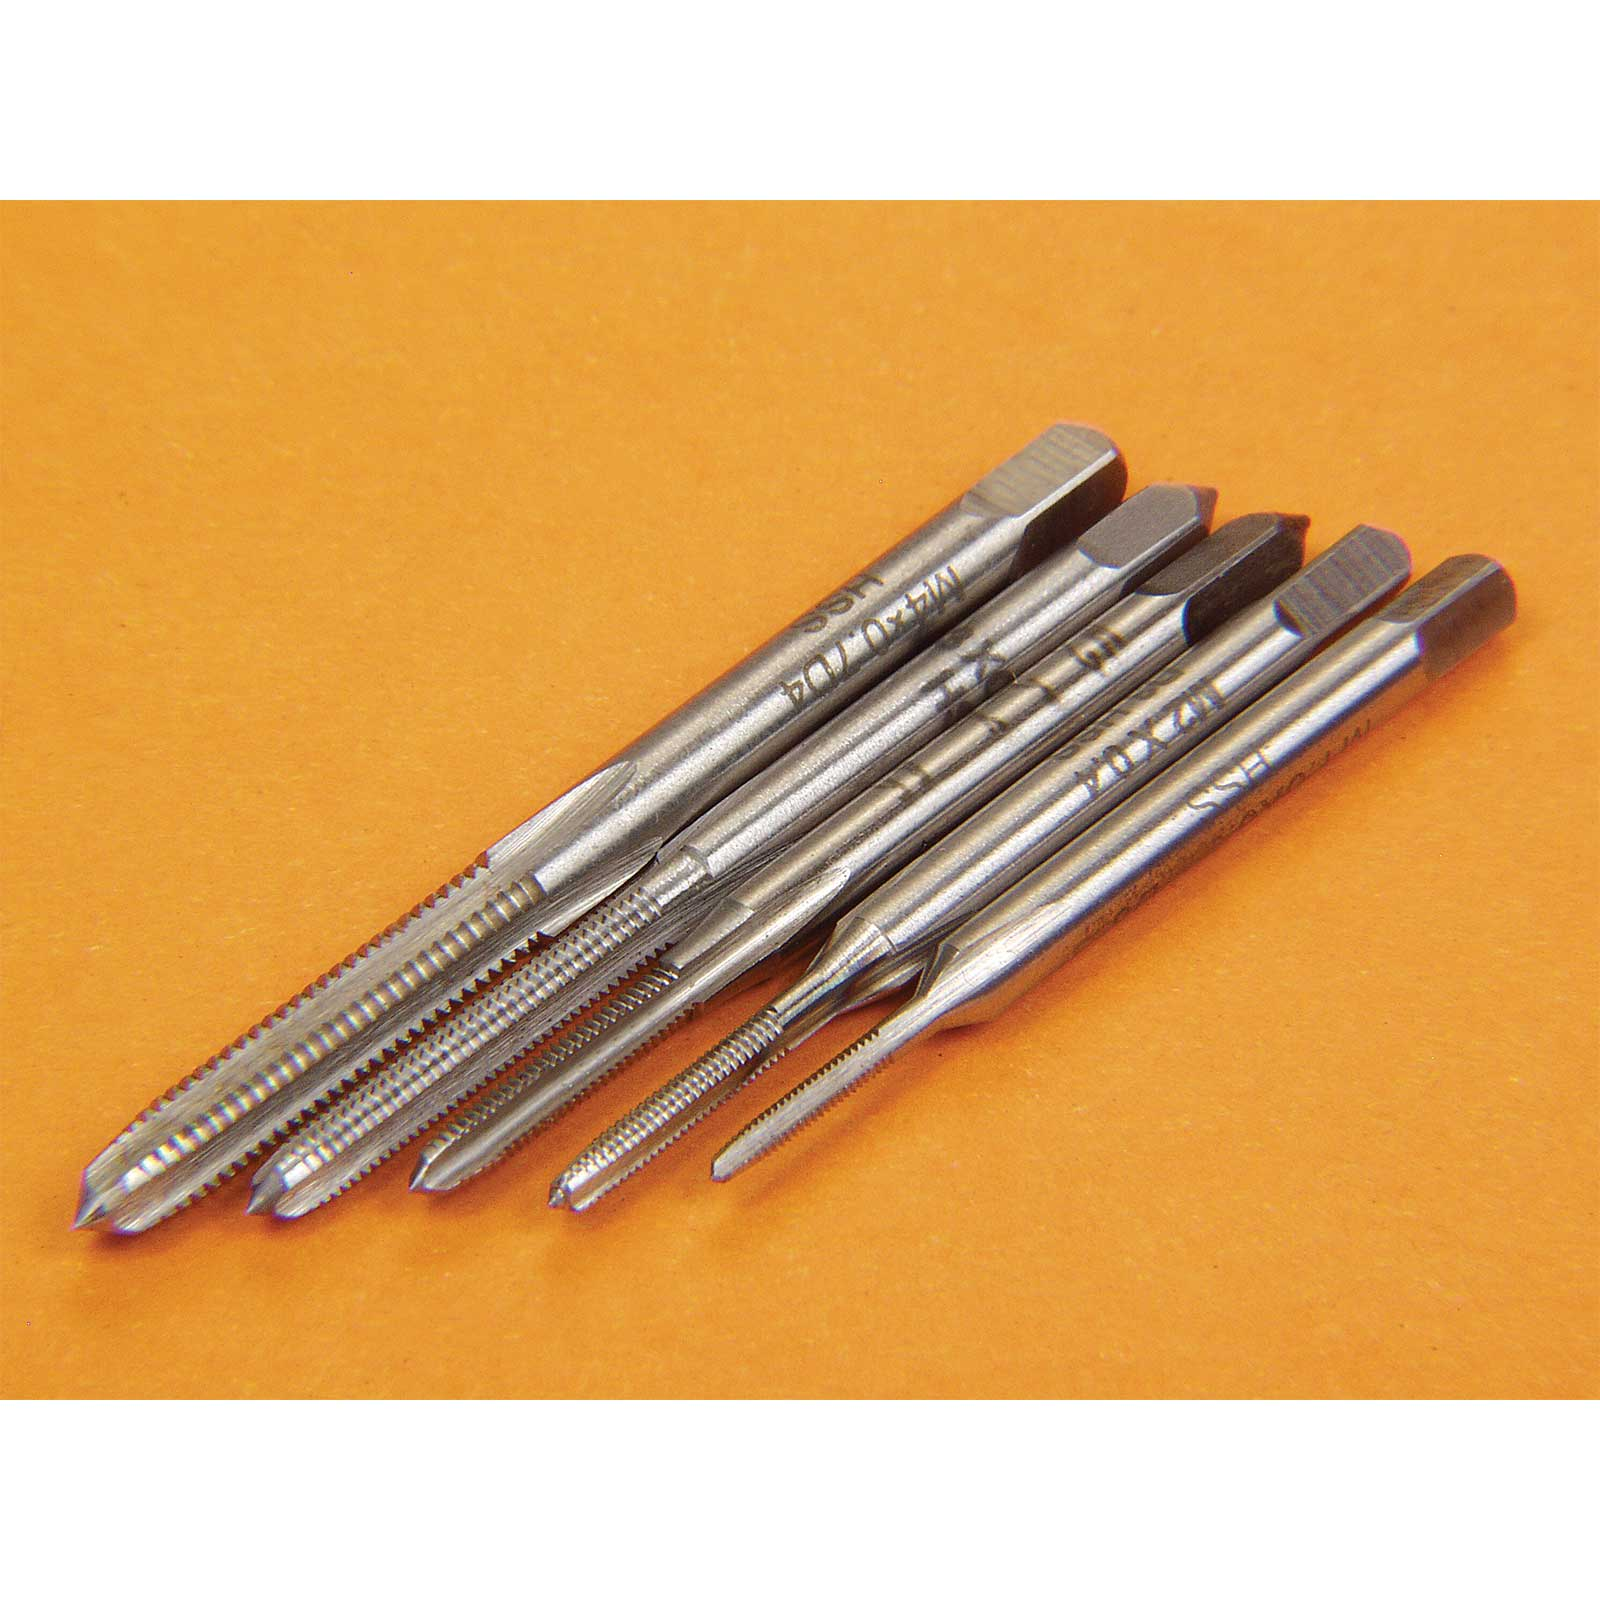 5-Piece Metric Tap Set